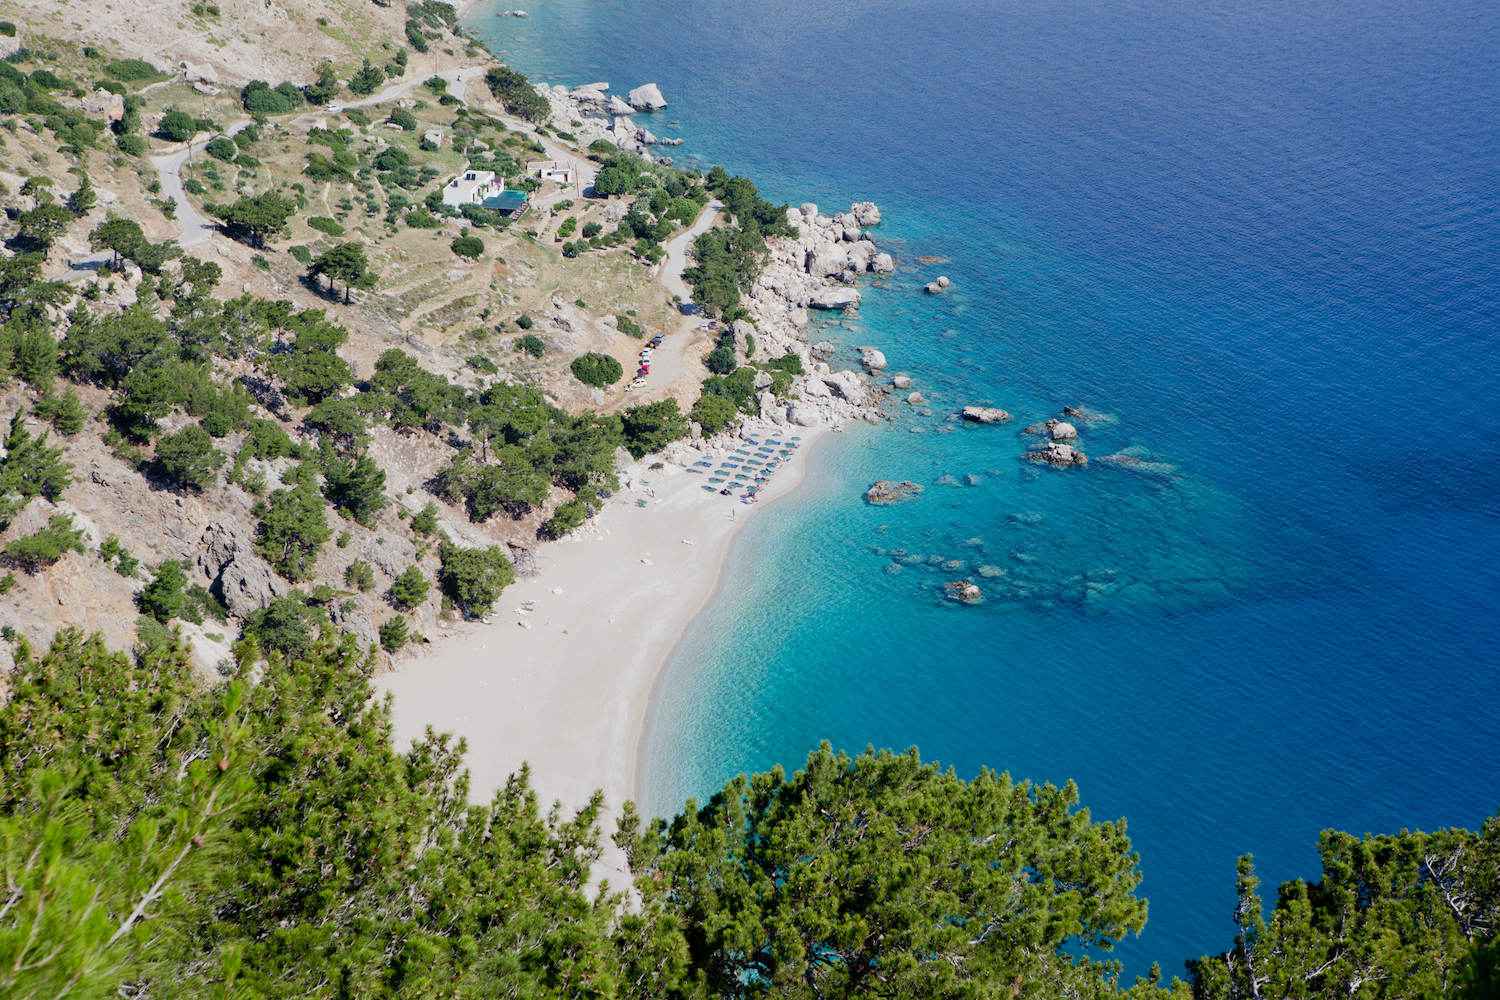 10 things I hate about Karpathos